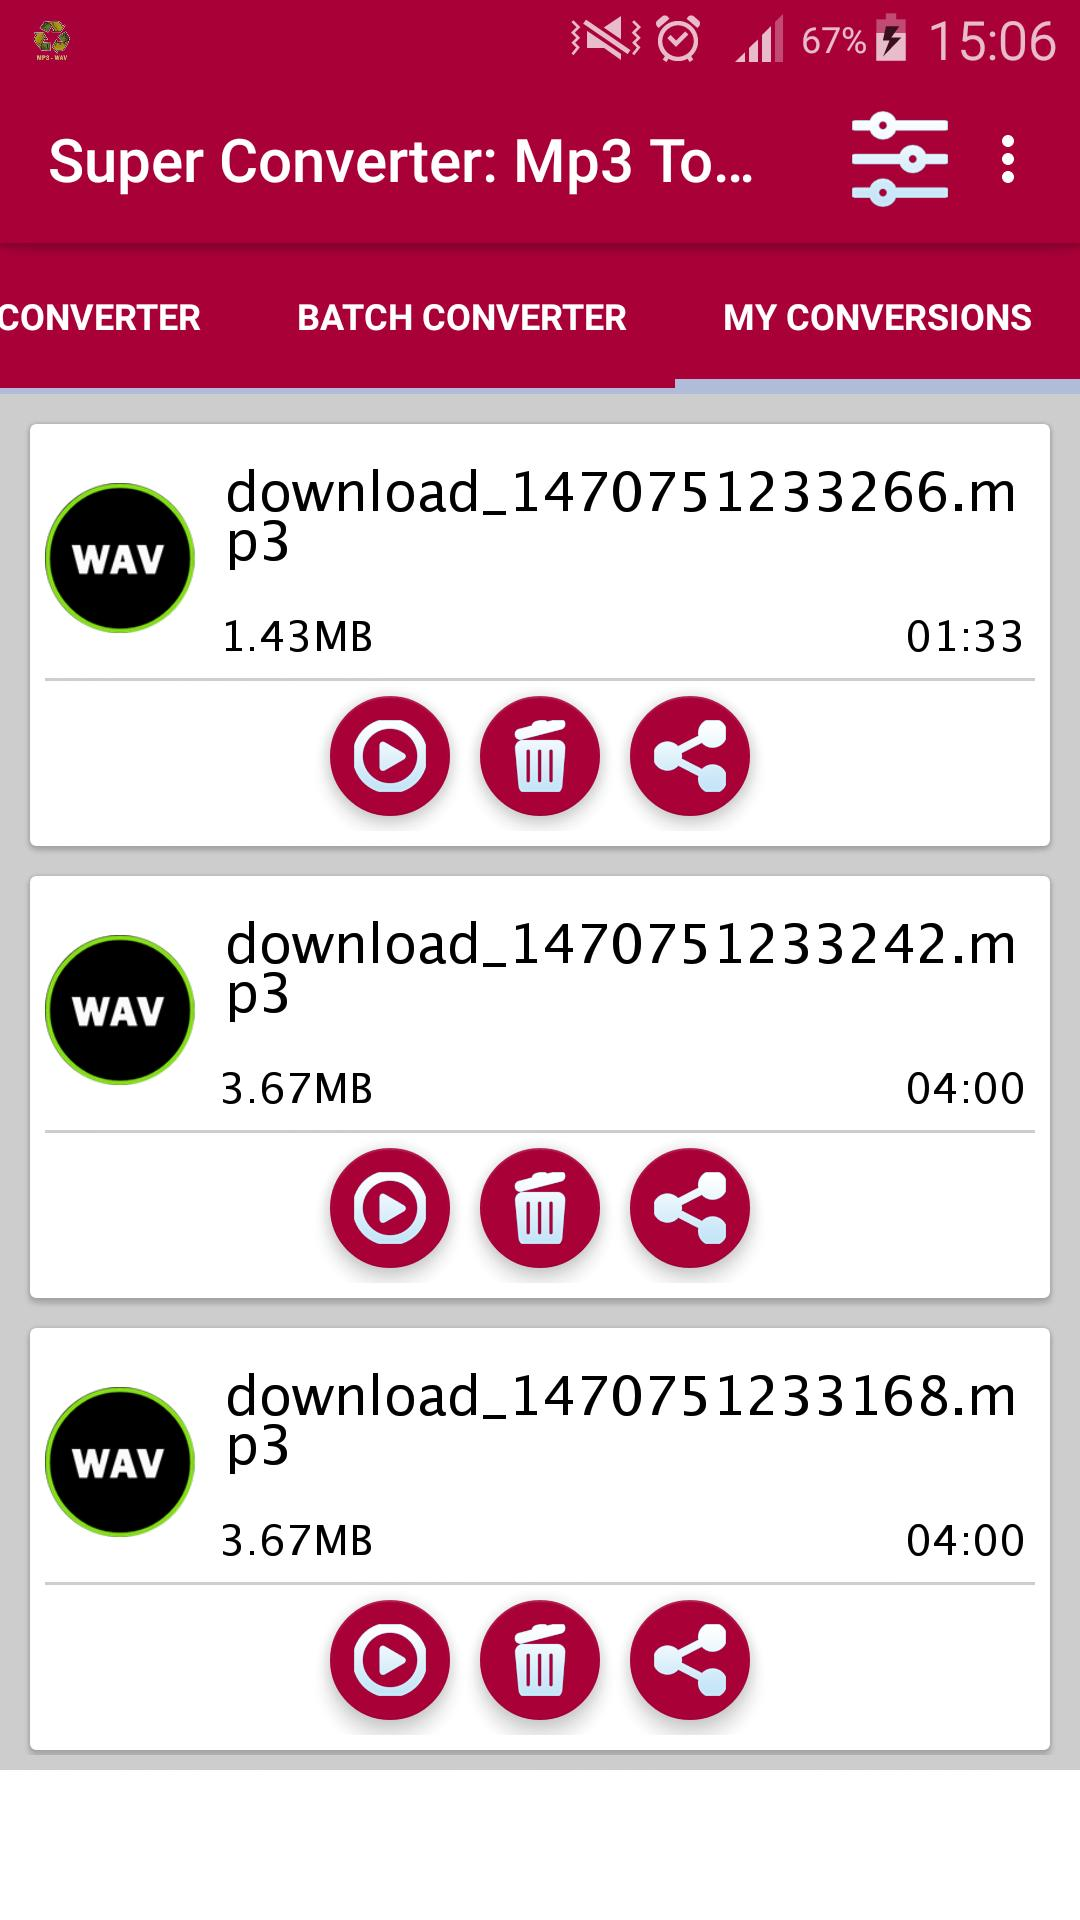 Super Converter Mp3 To Wav For Android Apk Download